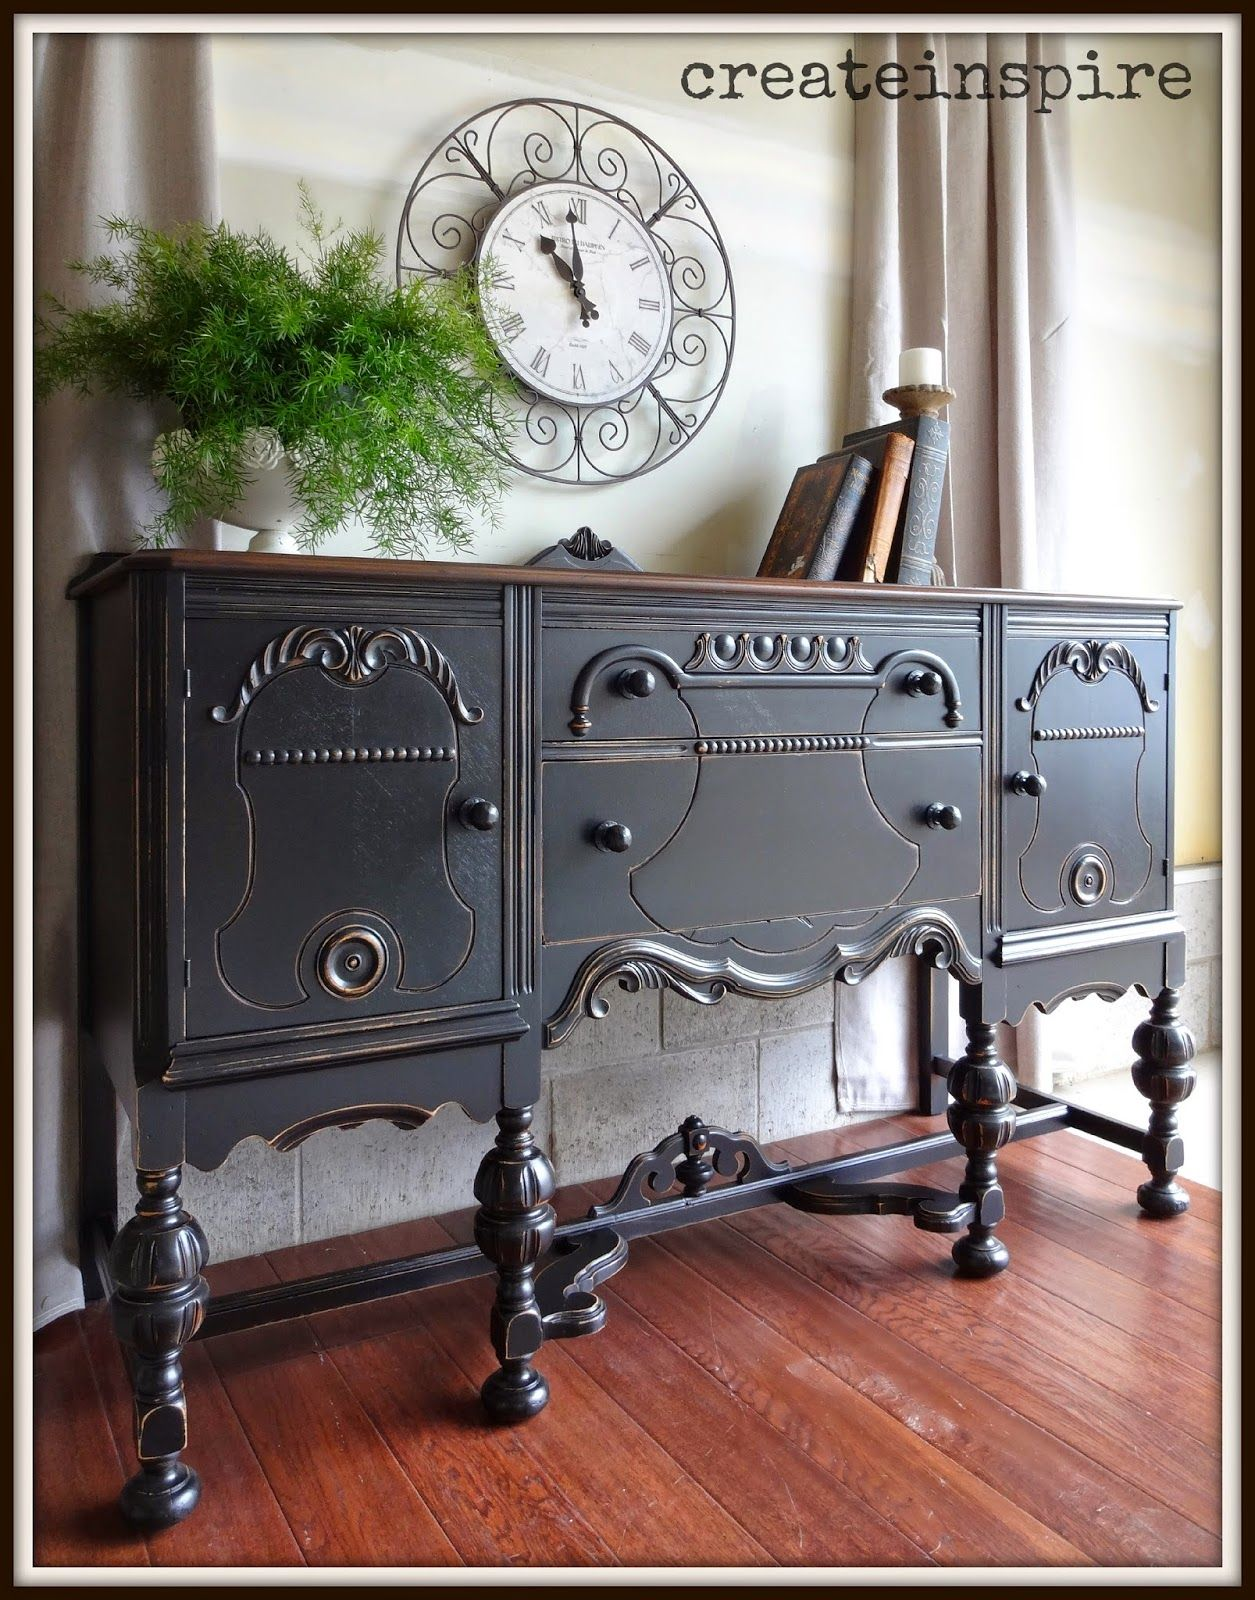 DIY: How to Transform Furniture using Black Minwax Gel Stain and Polycrylic  - this is a beautiful piece! - via Create Inspire - Antique Buffet in Black - DIY: How To Transform Furniture Using Black Minwax Gel Stain And